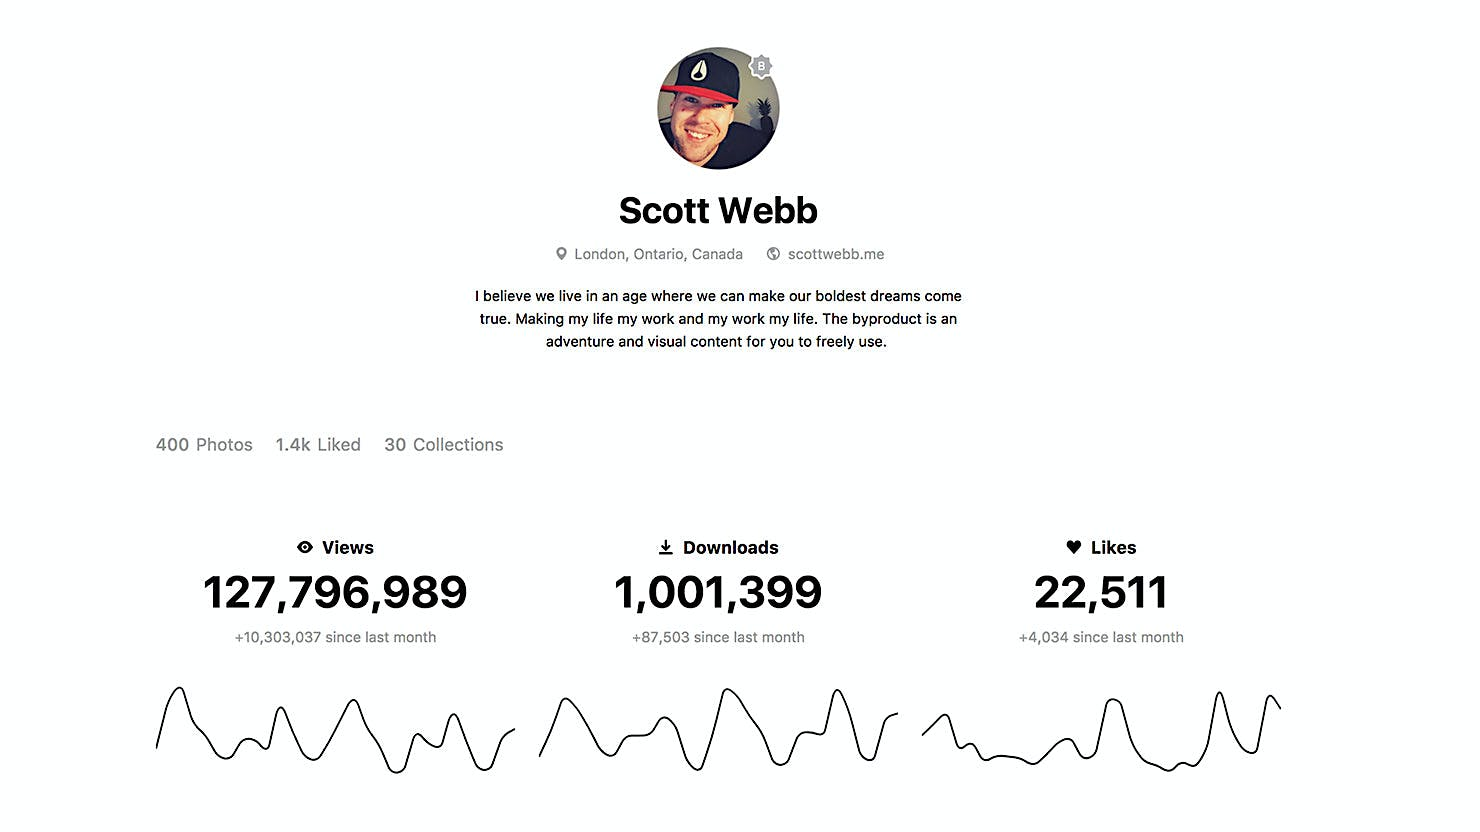 Officially Over One Million Downloads on Unsplash